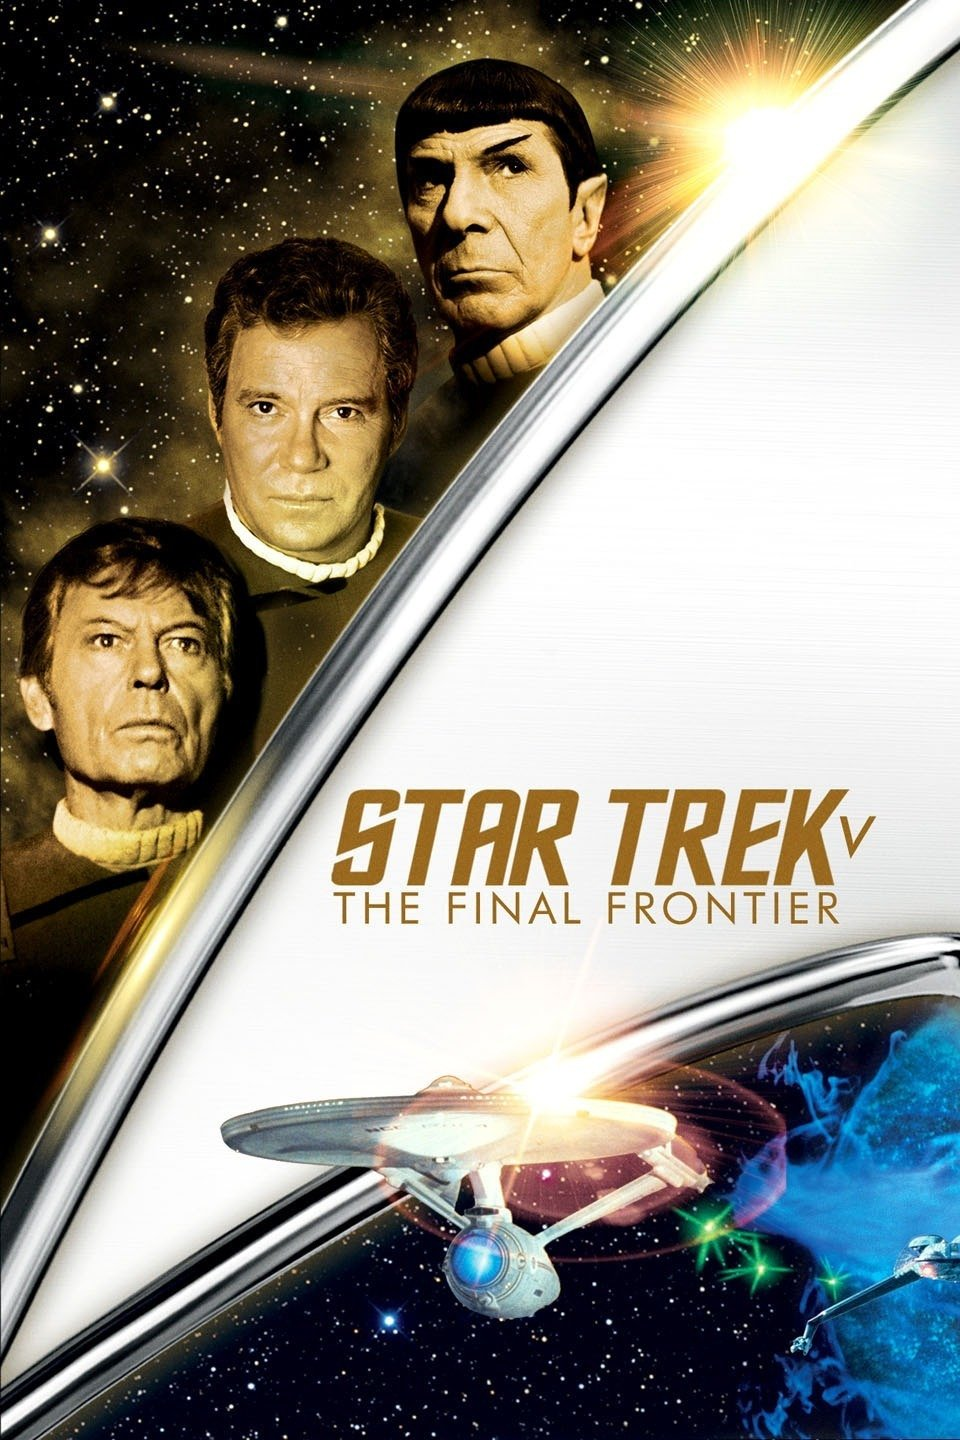 Star Trek V: The Final Frontier-Star Trek V: The Final Frontier